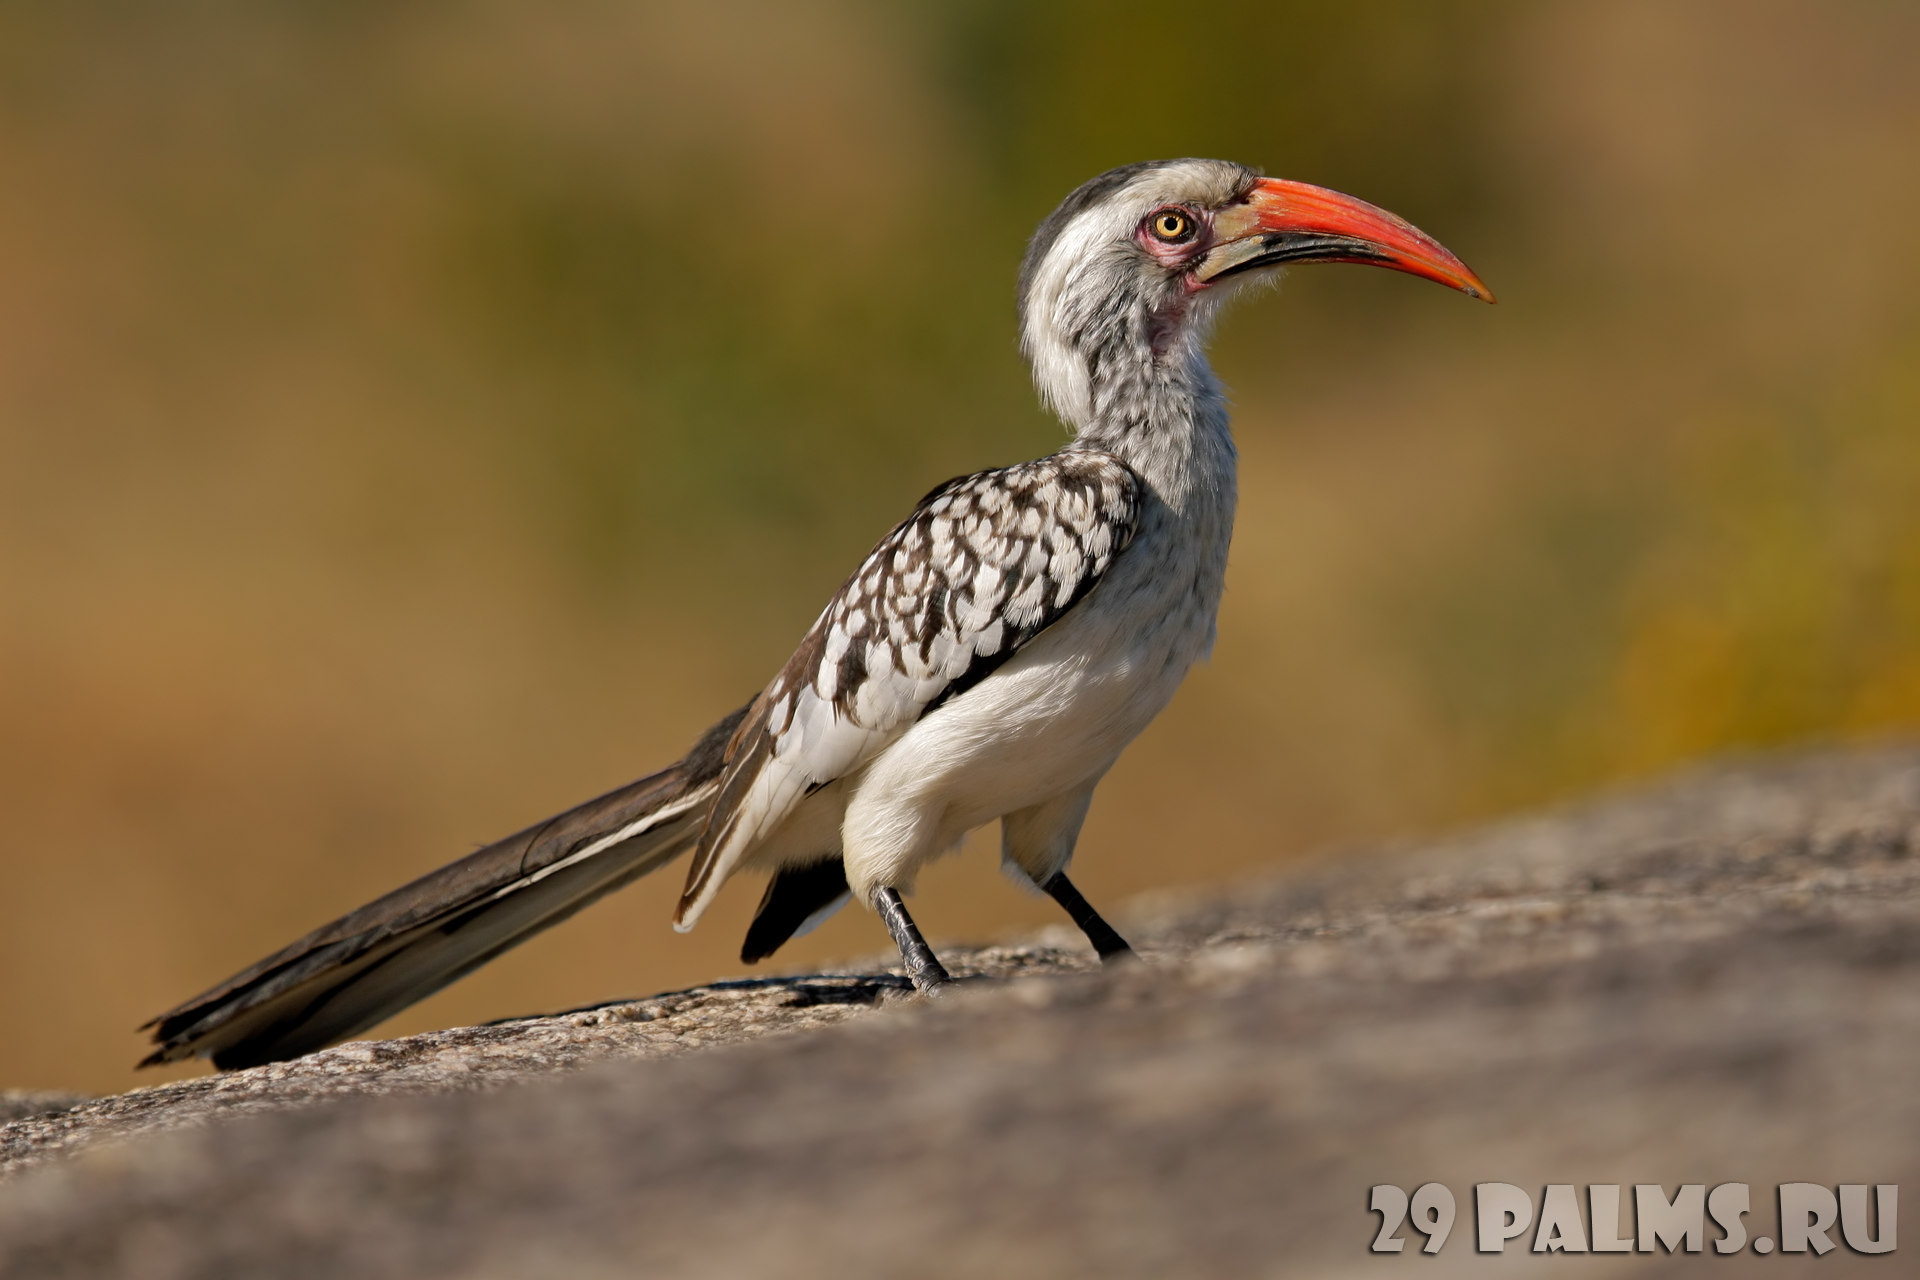 Блог Павла Аксенова. Красноклювый ток (или токо) (лат. Tockus erythrorhynchus, англ. Red billed hornbill). Фото EcoPic - Depositphotos